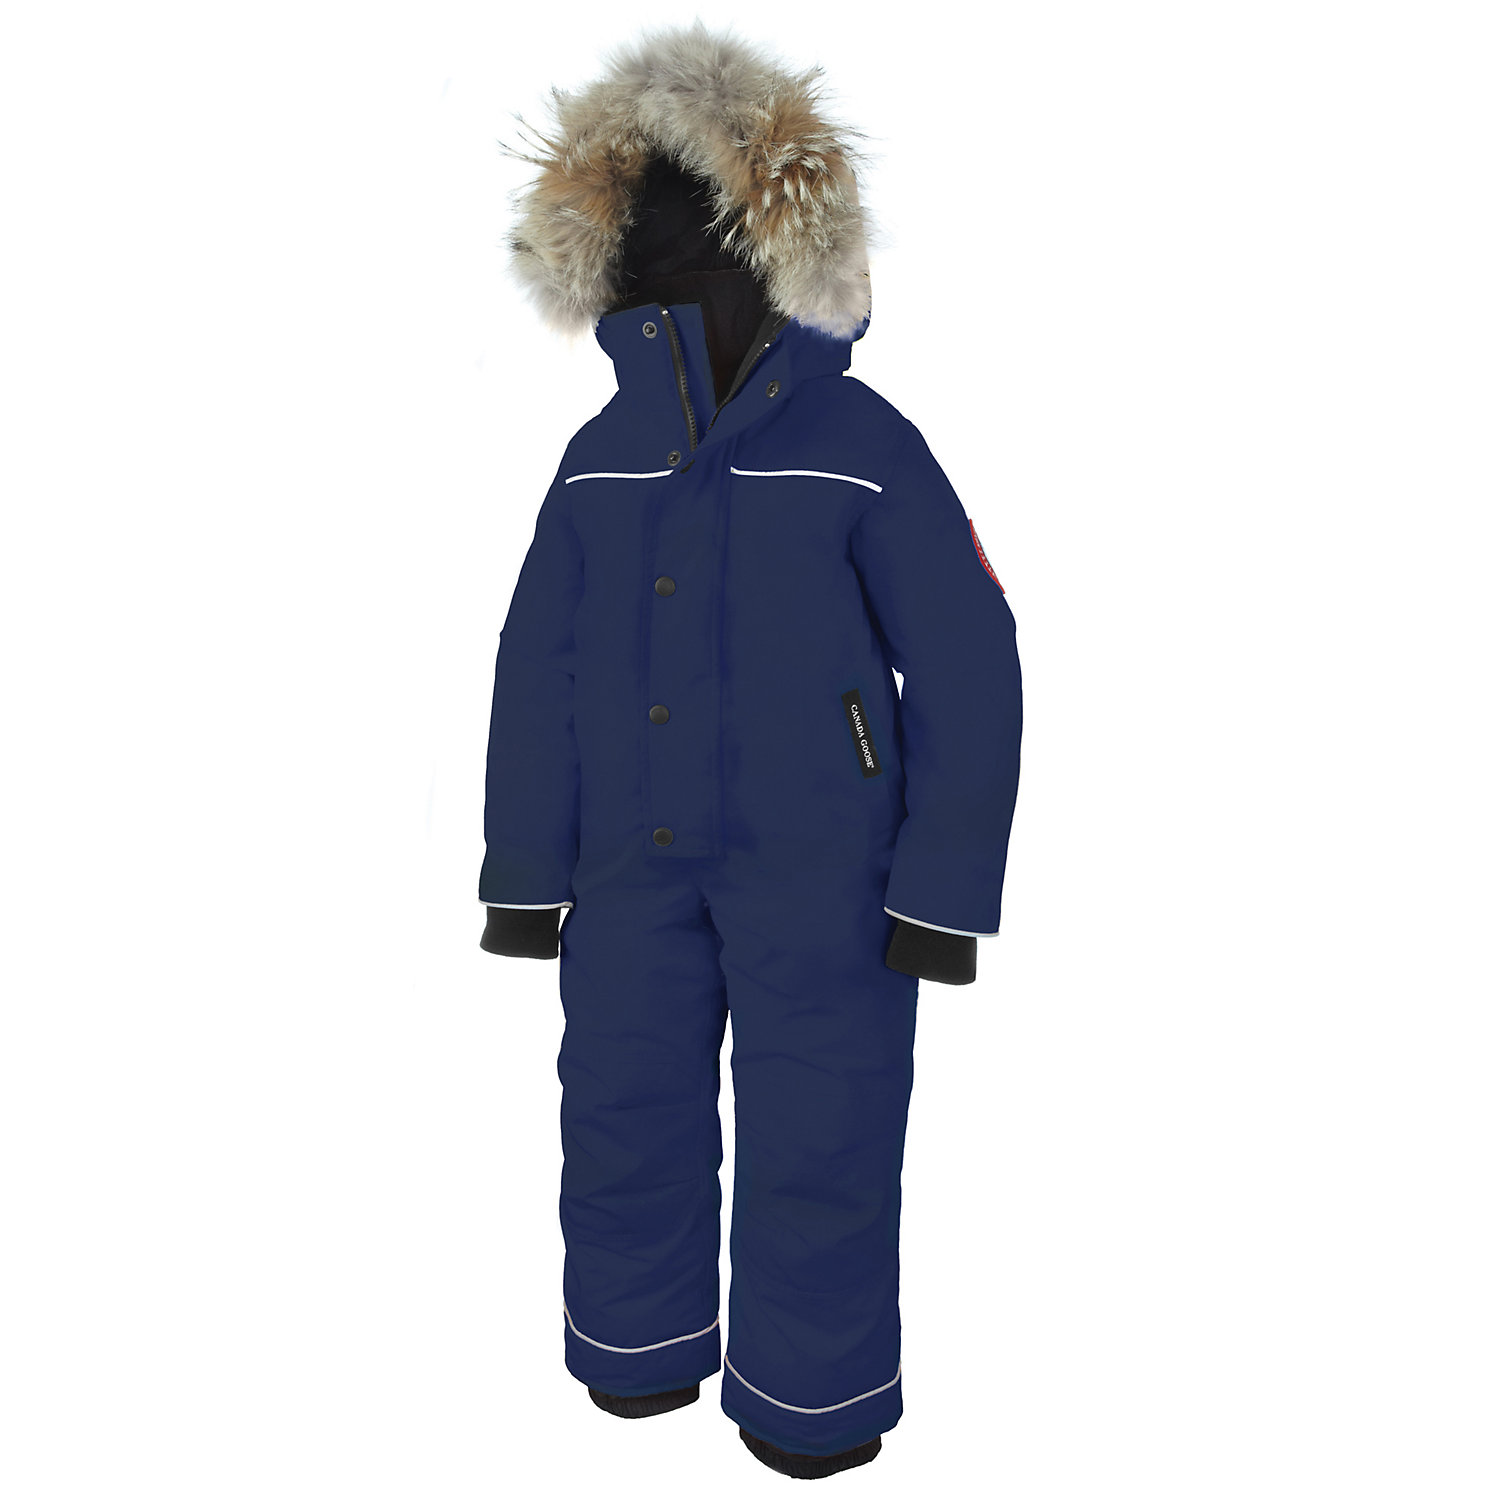 874a158f0 Canada Goose Kids' Grizzly Snowsuit - Moosejaw